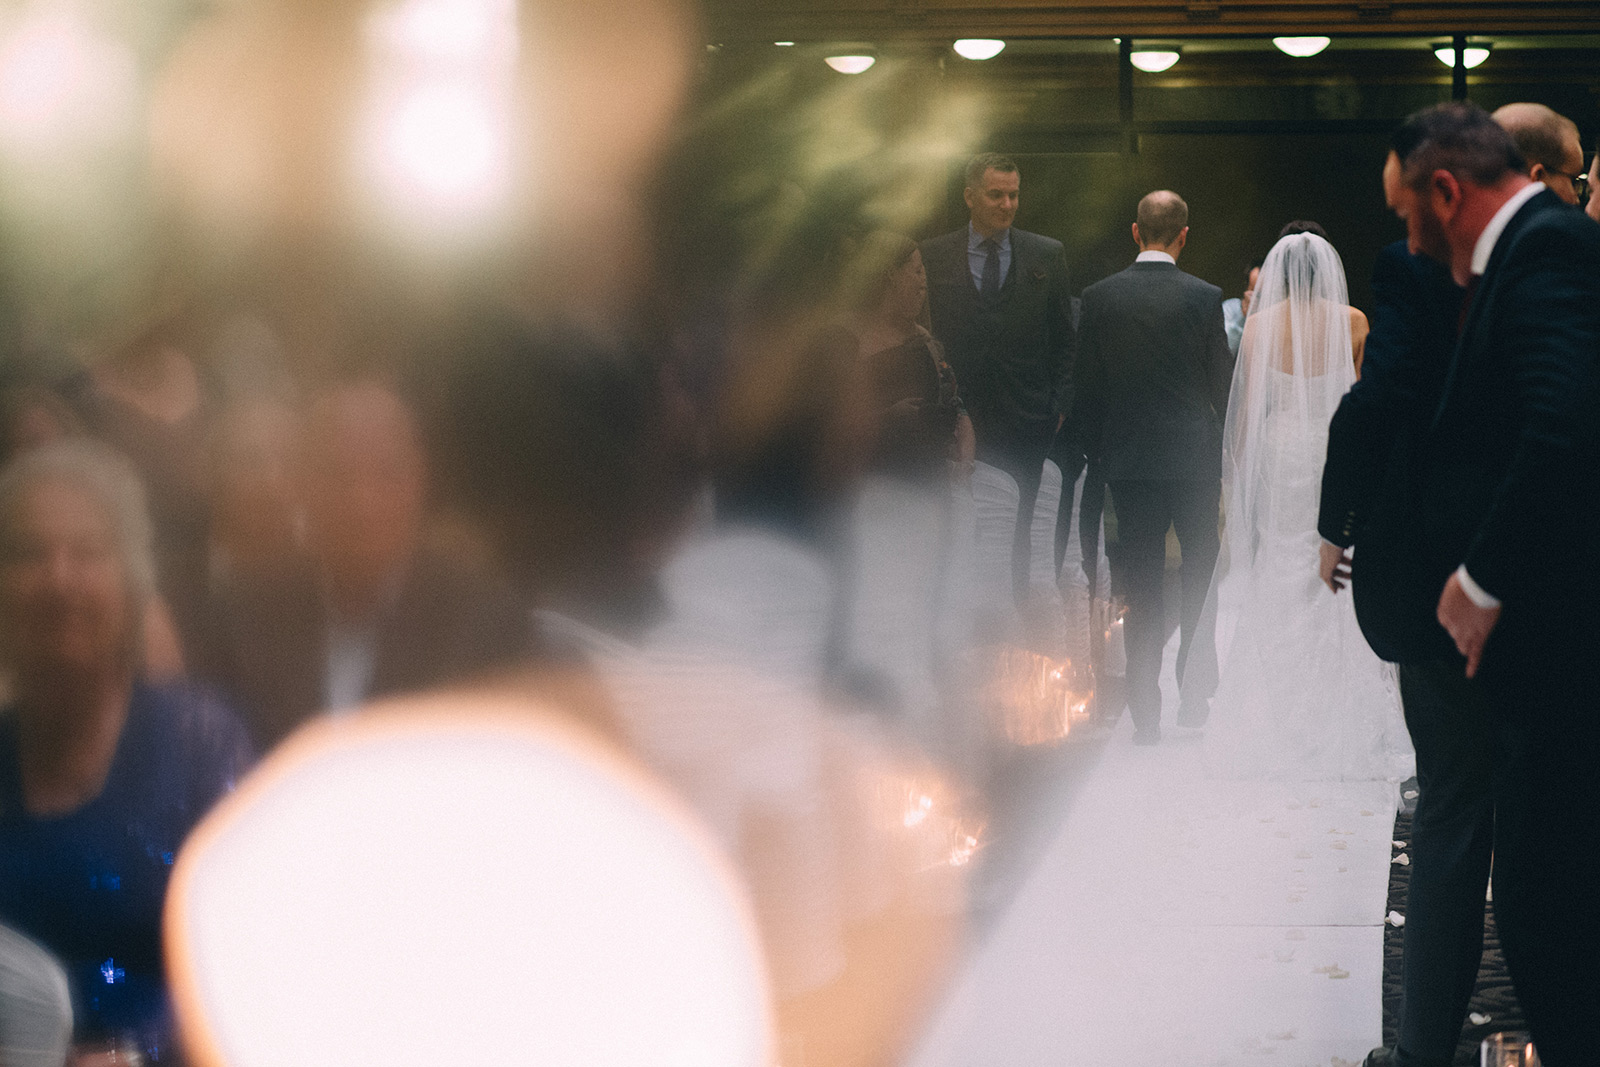 One-King-West-Toronto-wedding-photography_Sam-Wong-of-Visual-Cravings_KnR-29